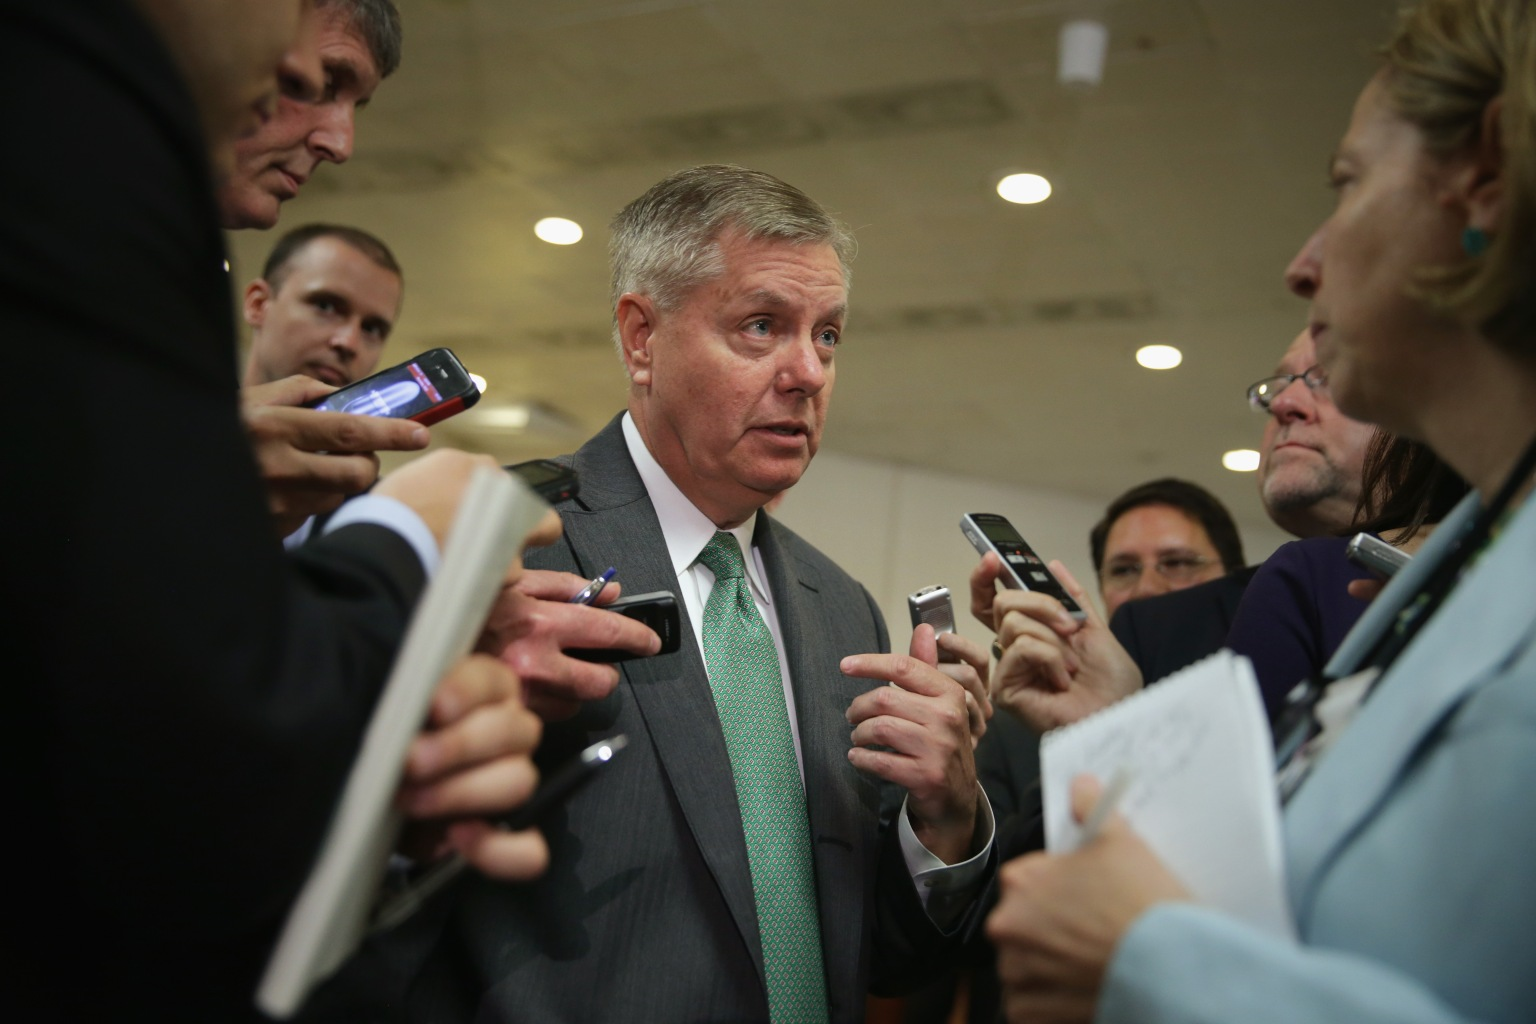 foreignpolicy.com - Michael A. Cohen - Lindsey Graham: Wrong on Everything